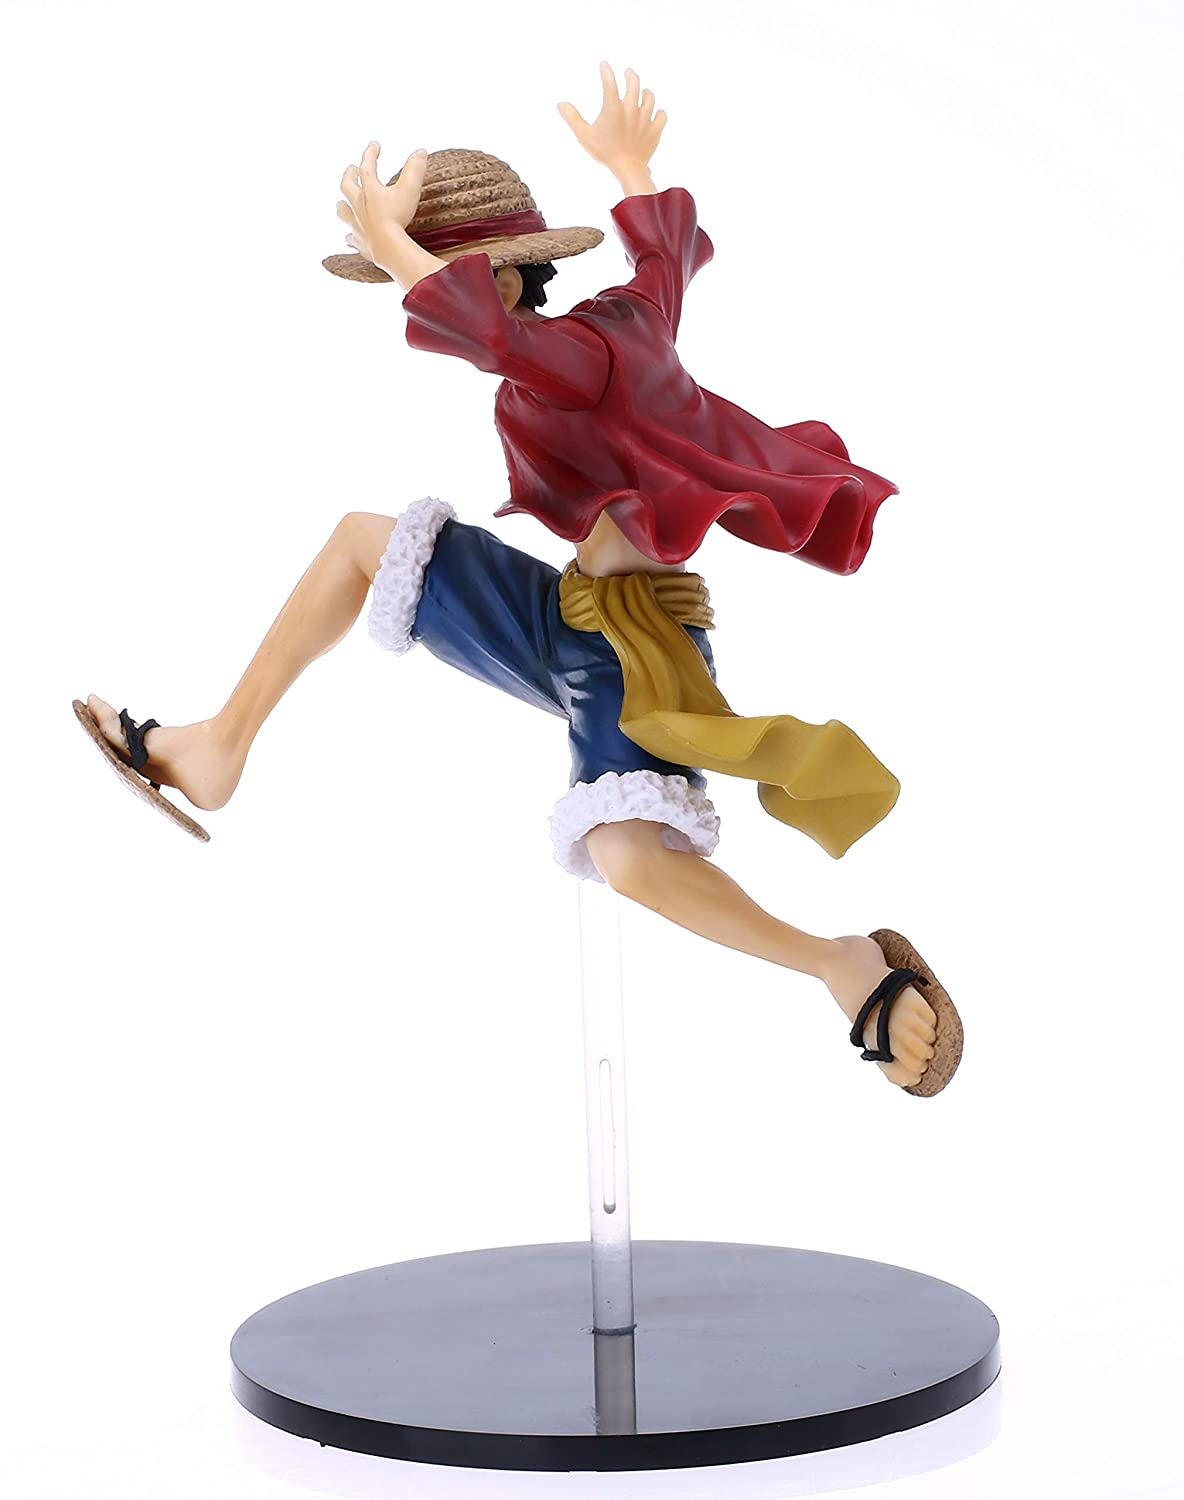 DOMAN One Piece Action Figure Luffy Figure Statues Model Doll Collection Gifts PVC 6.5